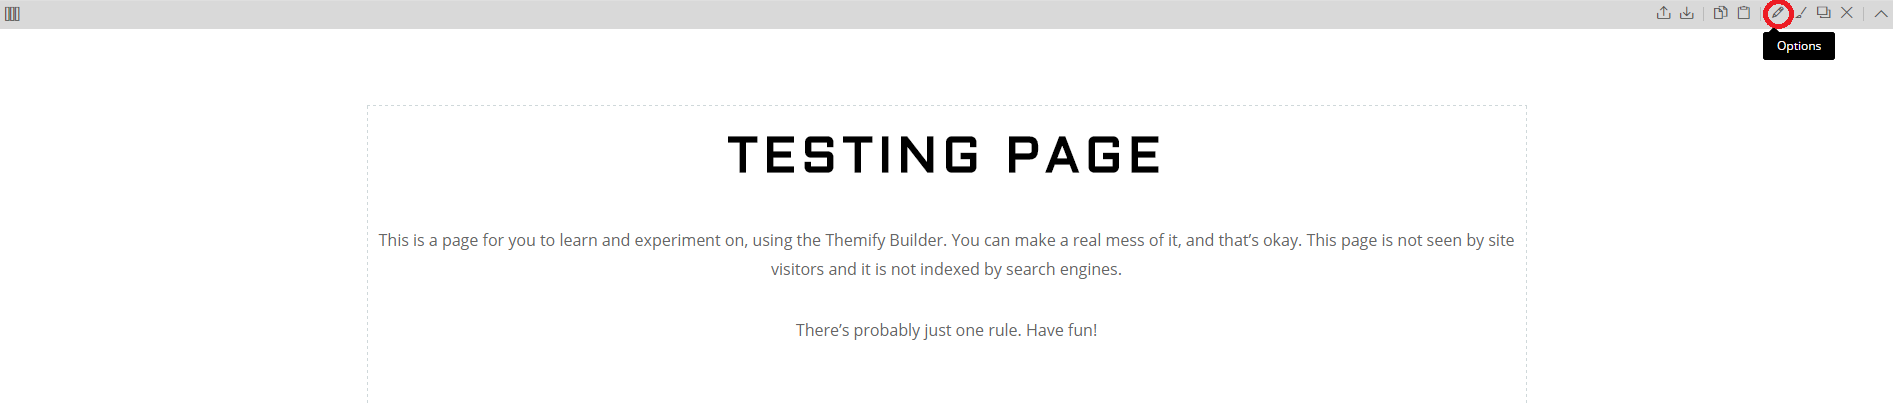 Themify Builder, Testing Page